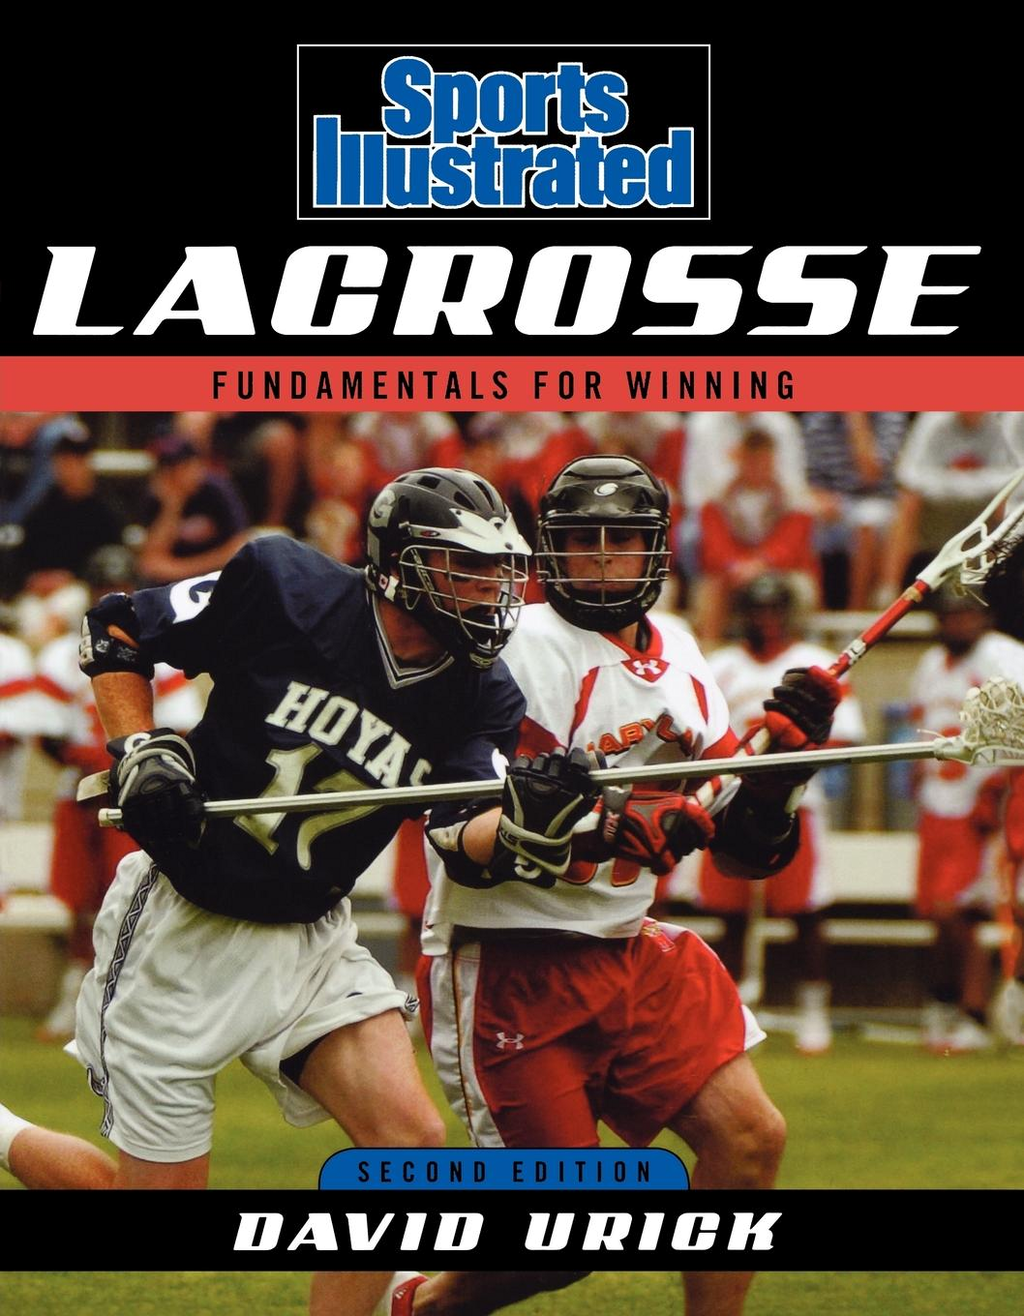 Sports Illustrated Lacrosse By: David Urick